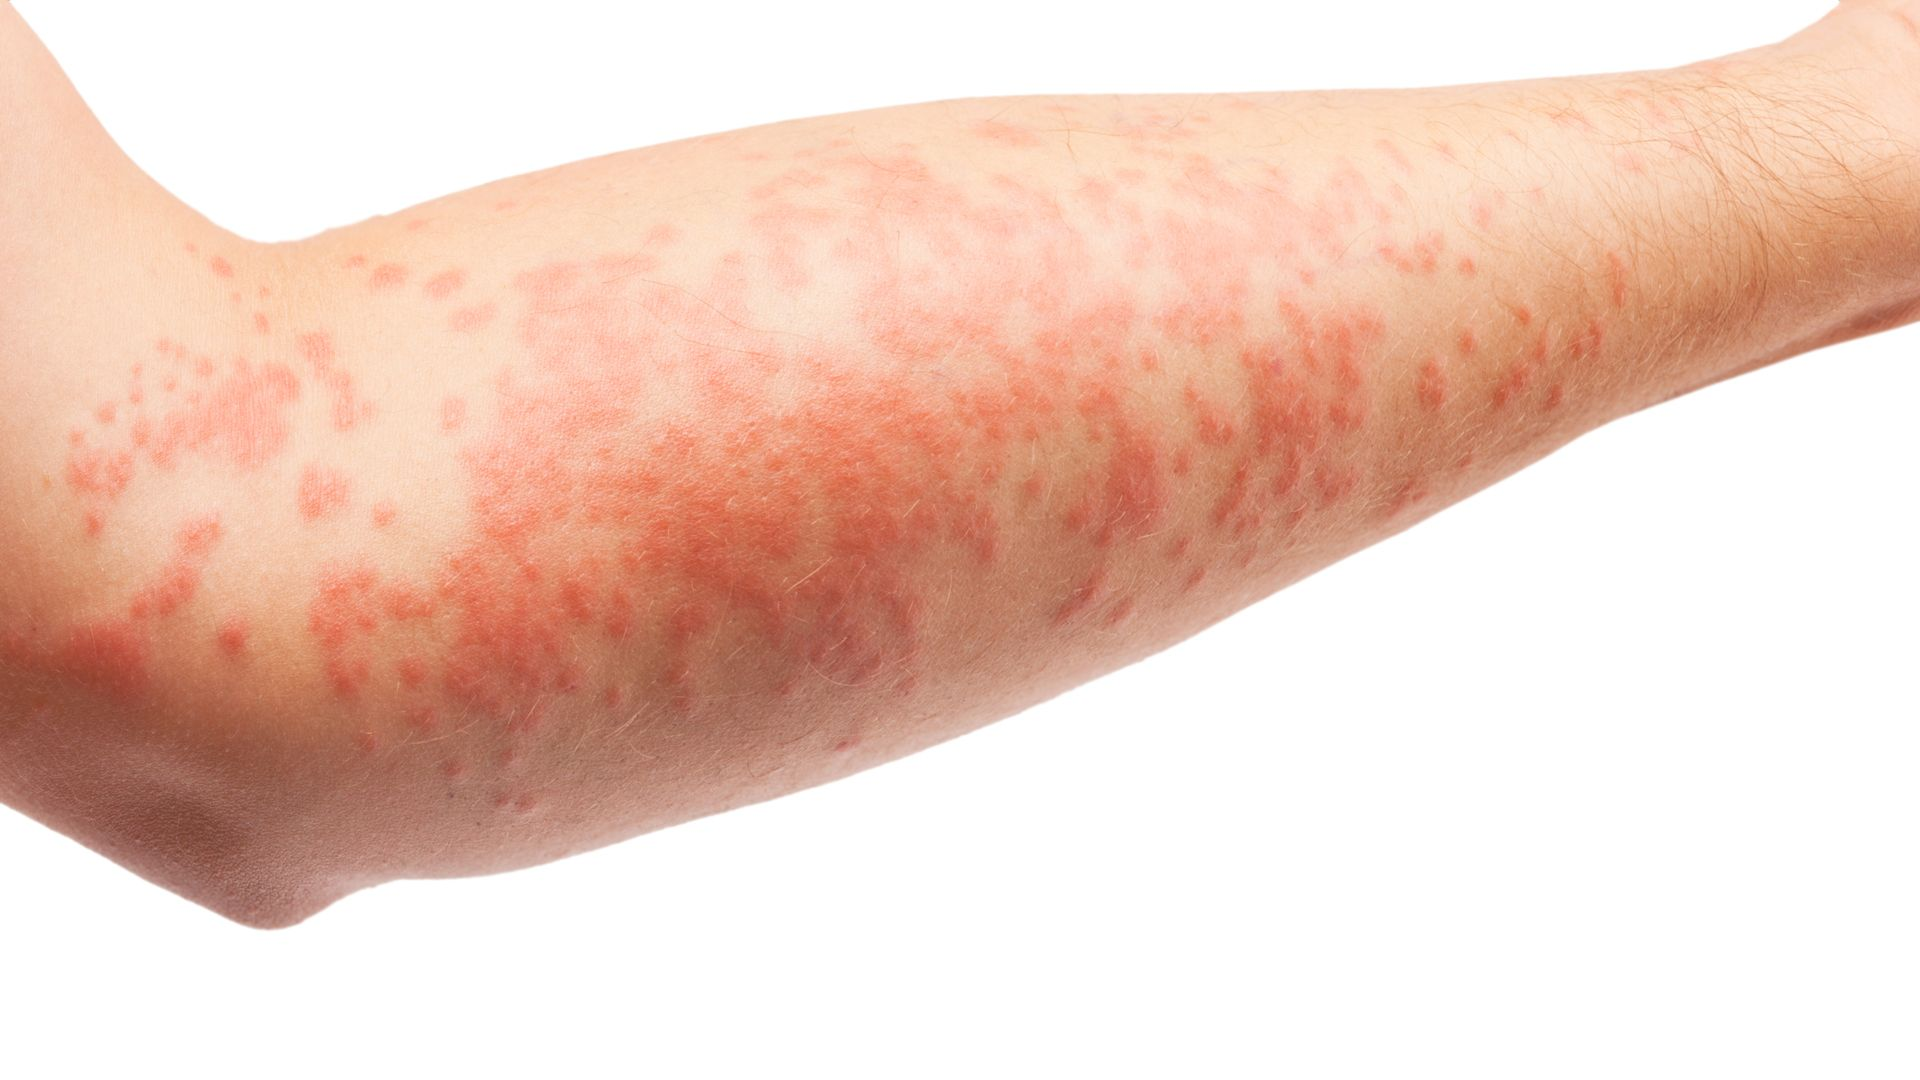 Are you suffering from eczema?